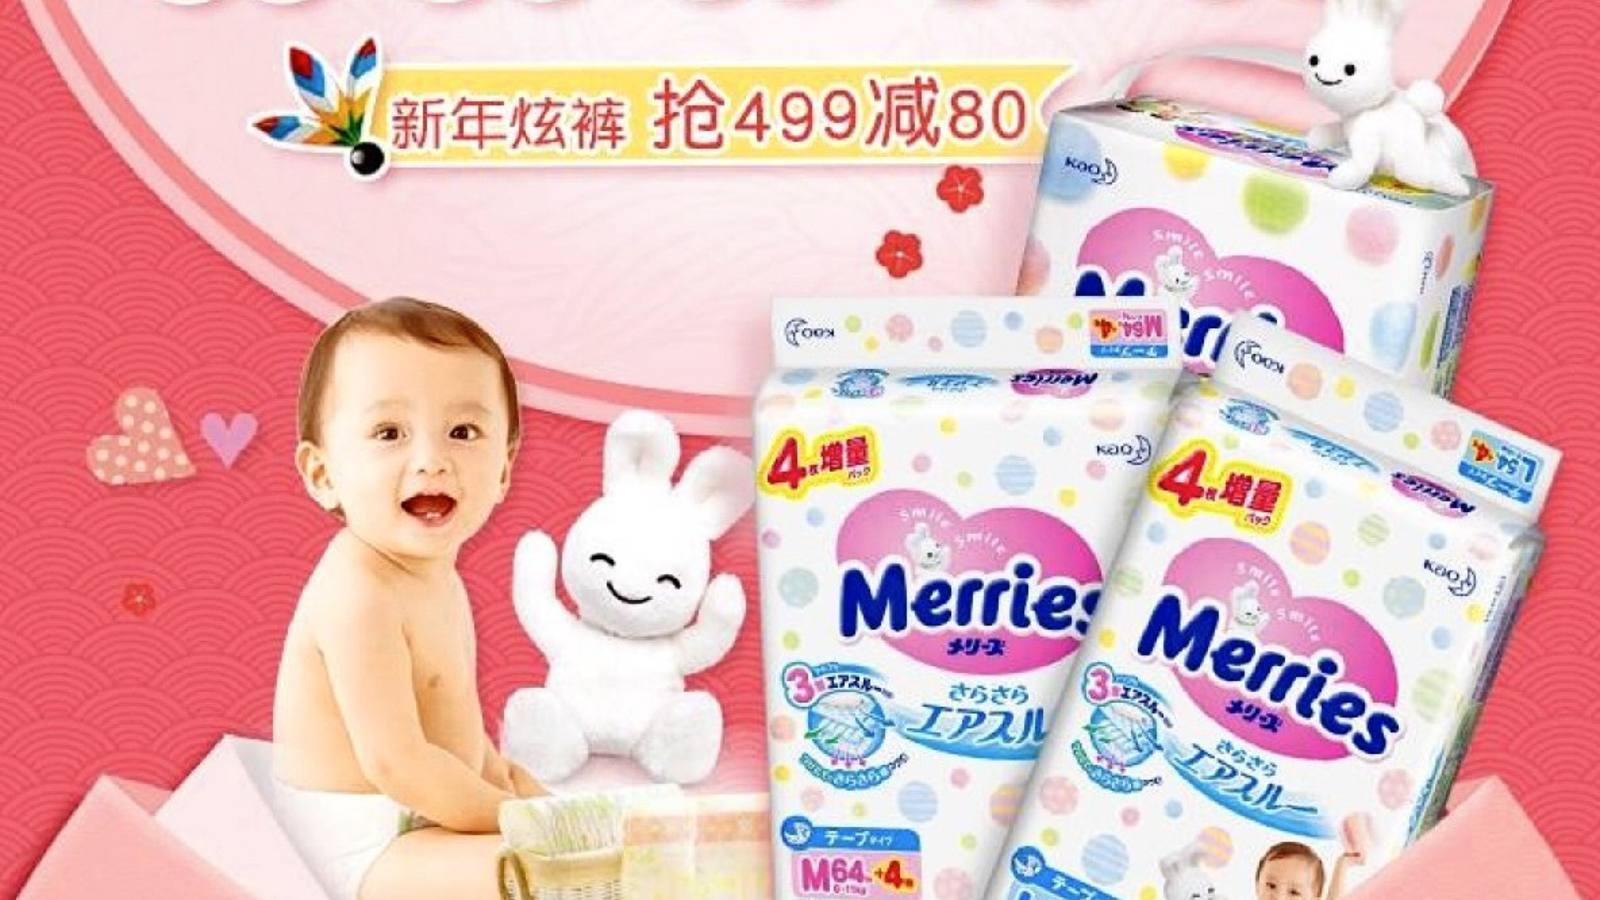 Kao Battles P G And Unilever With Premium Brand Image Nikkei Asia